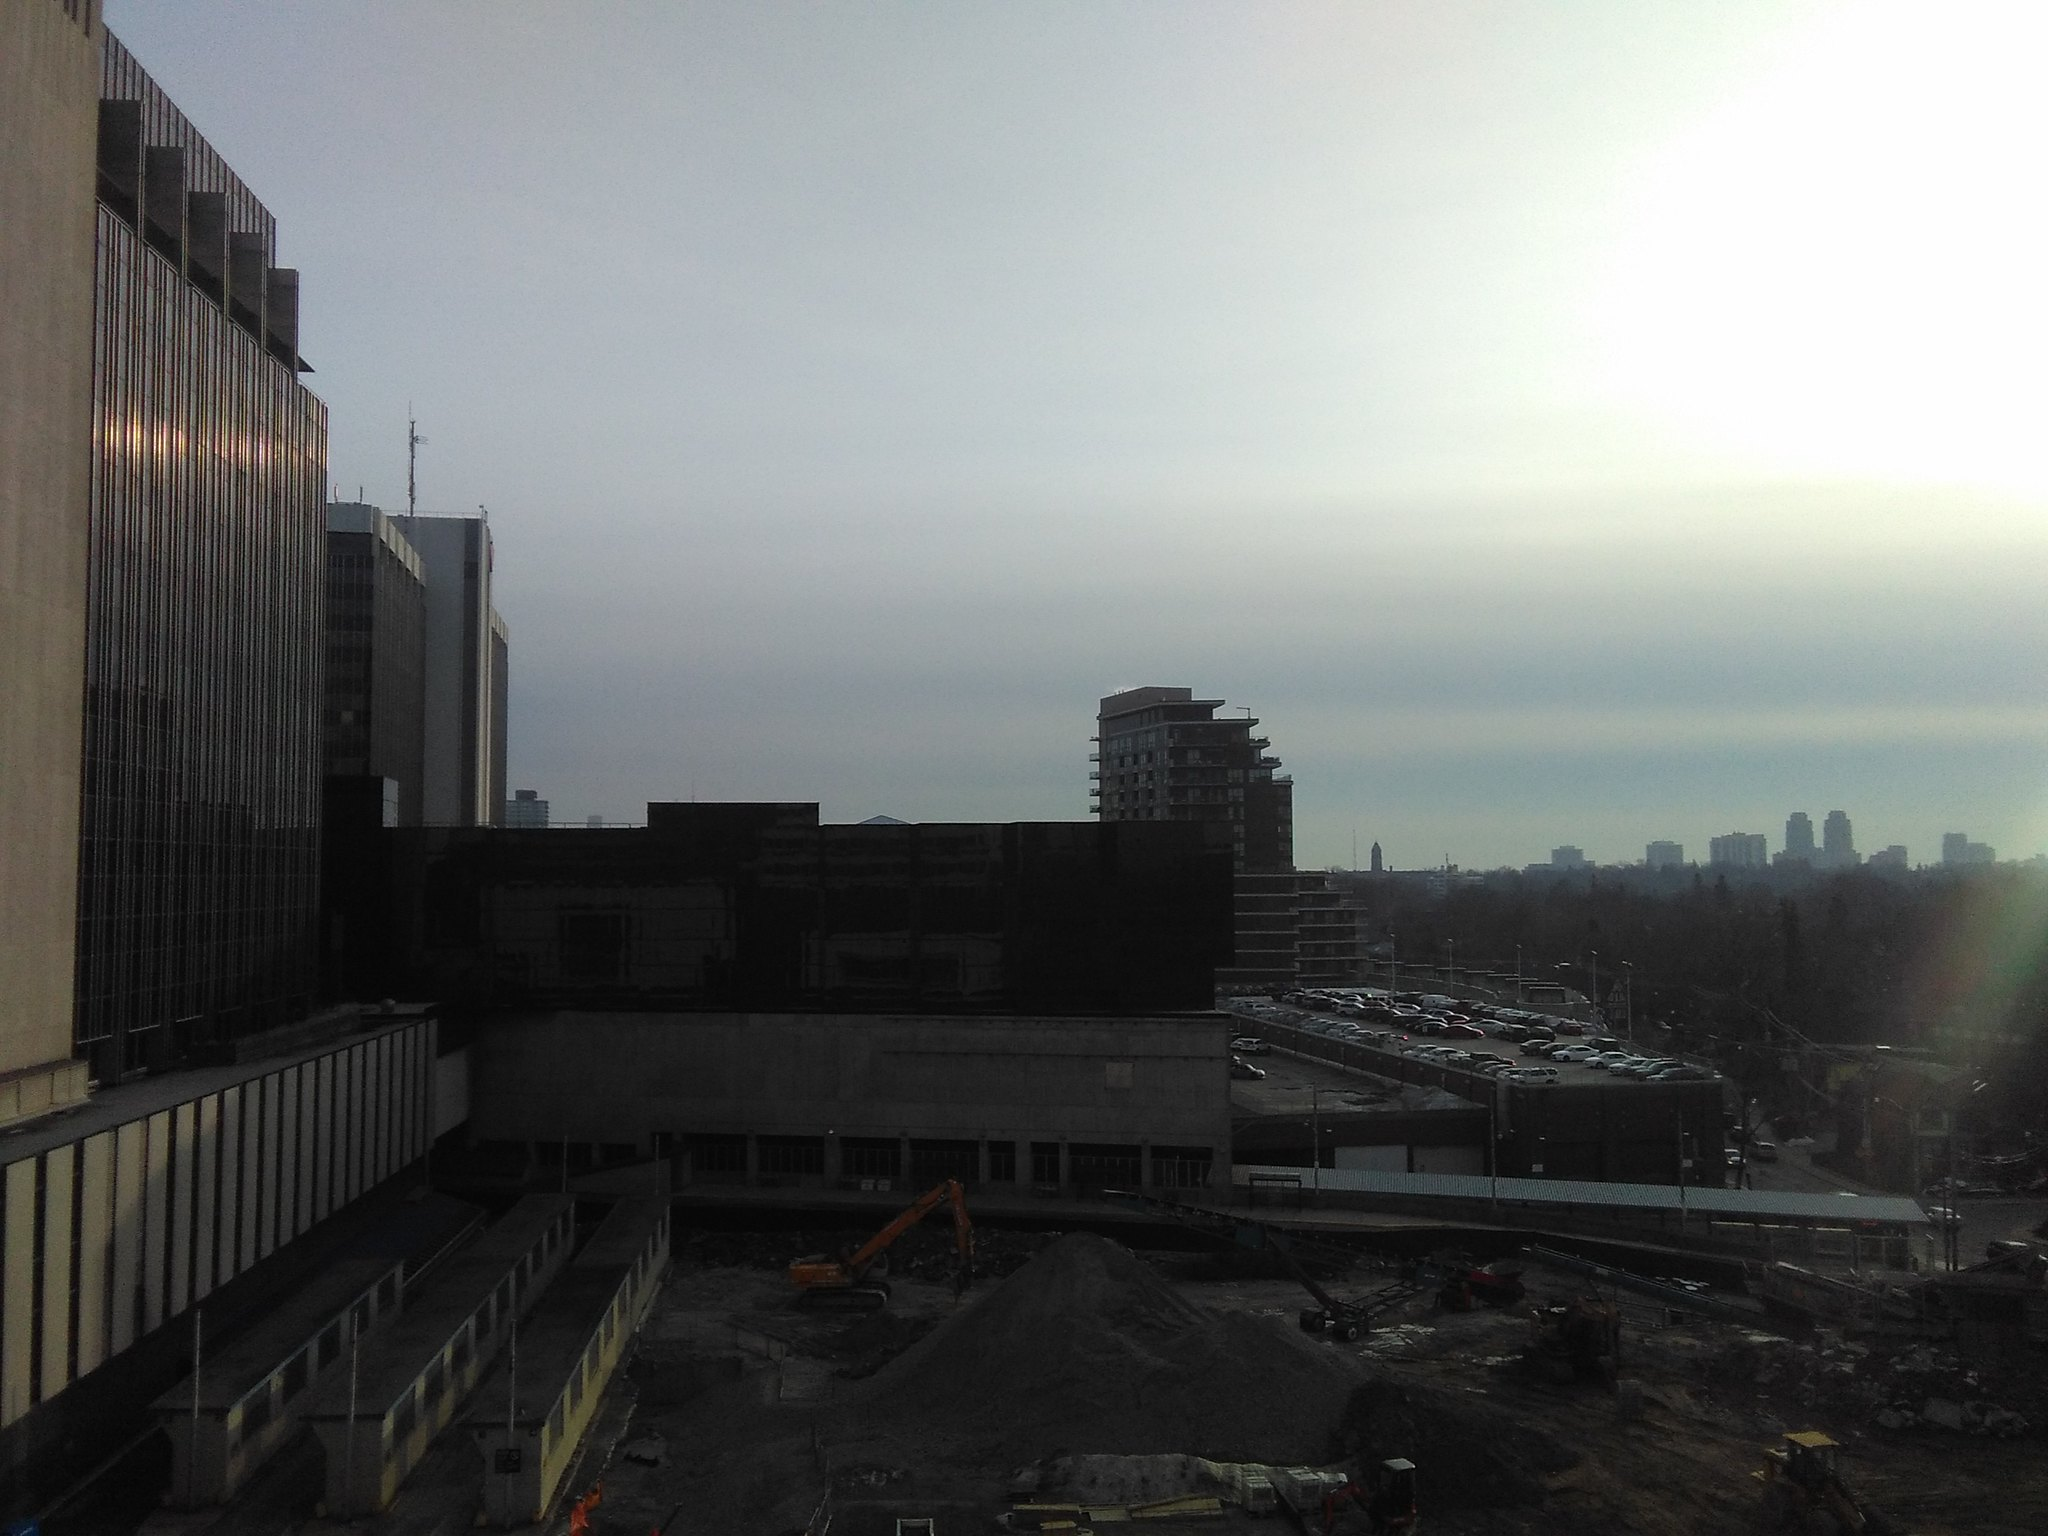 Looking south in afternoon sun, Yonge-Eglinton Centre #toronto #skyline #yongeandeglinton #yongeeglintoncentre